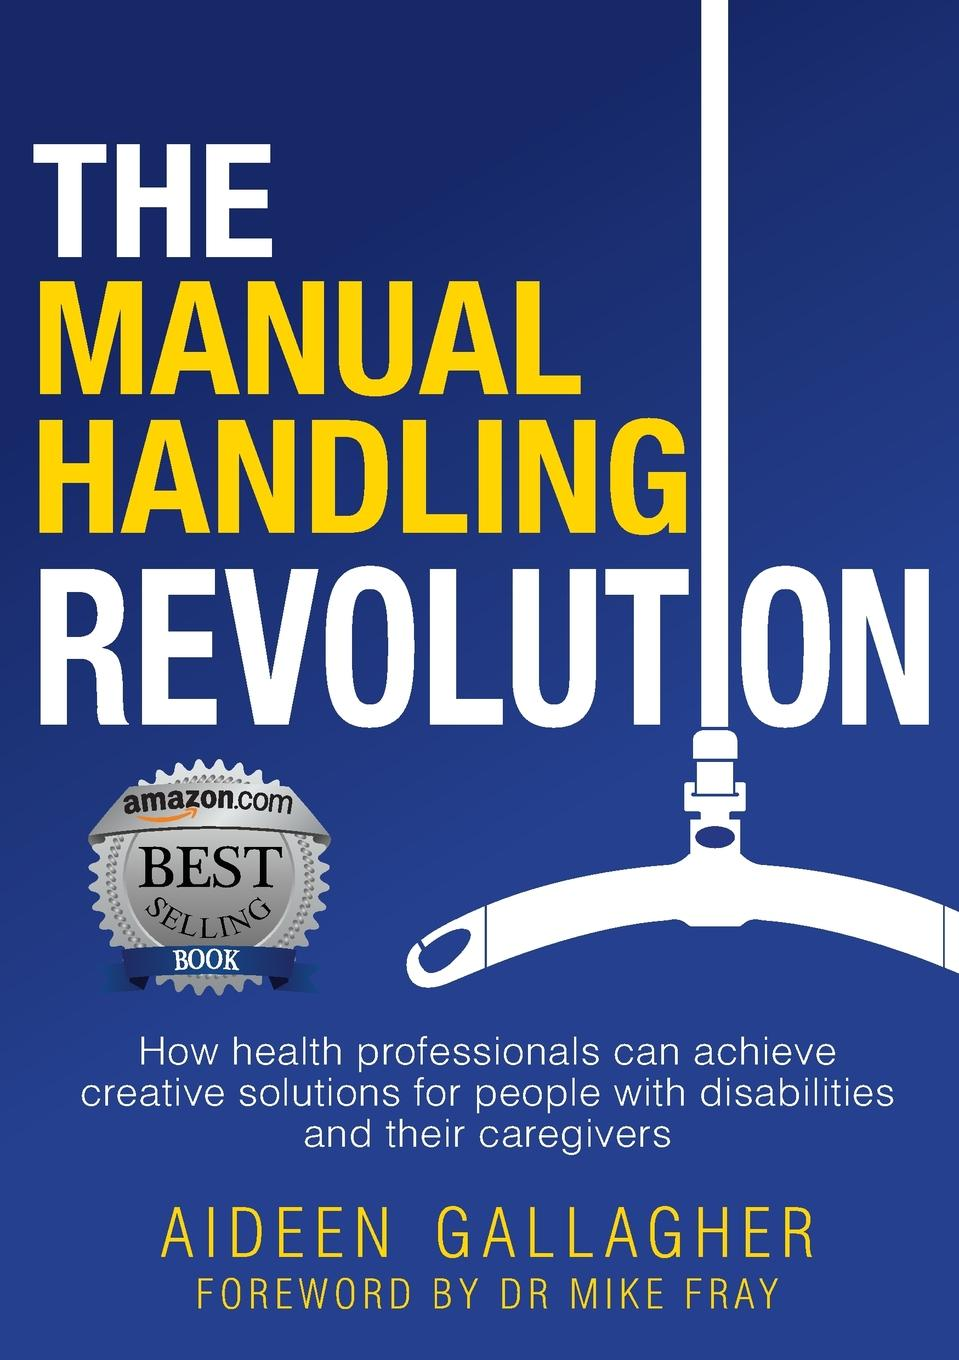 Aideen Gallagher The Manual Handling Revolution michael roberto a unlocking creativity how to solve any problem and make the best decisions by shifting creative mindsets